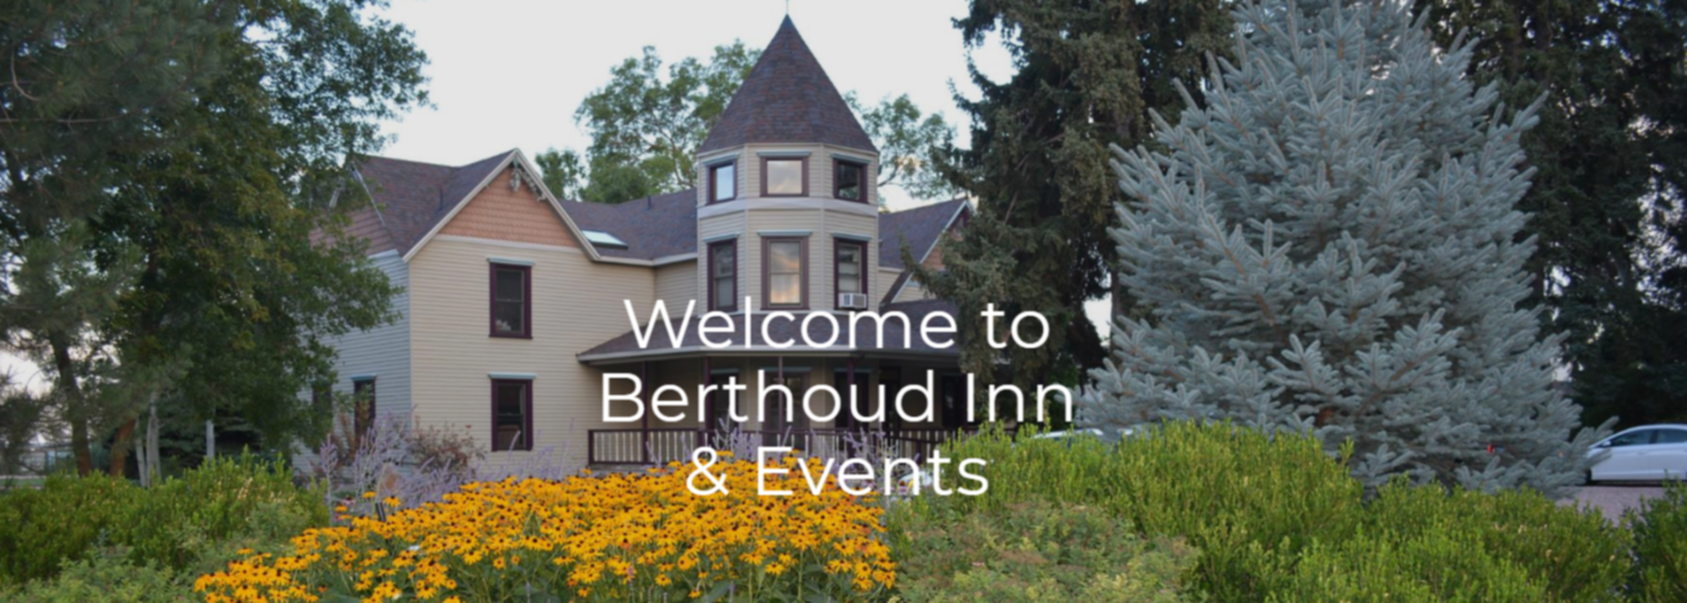 A sign in front of a house at Berthoud Inn and Events.